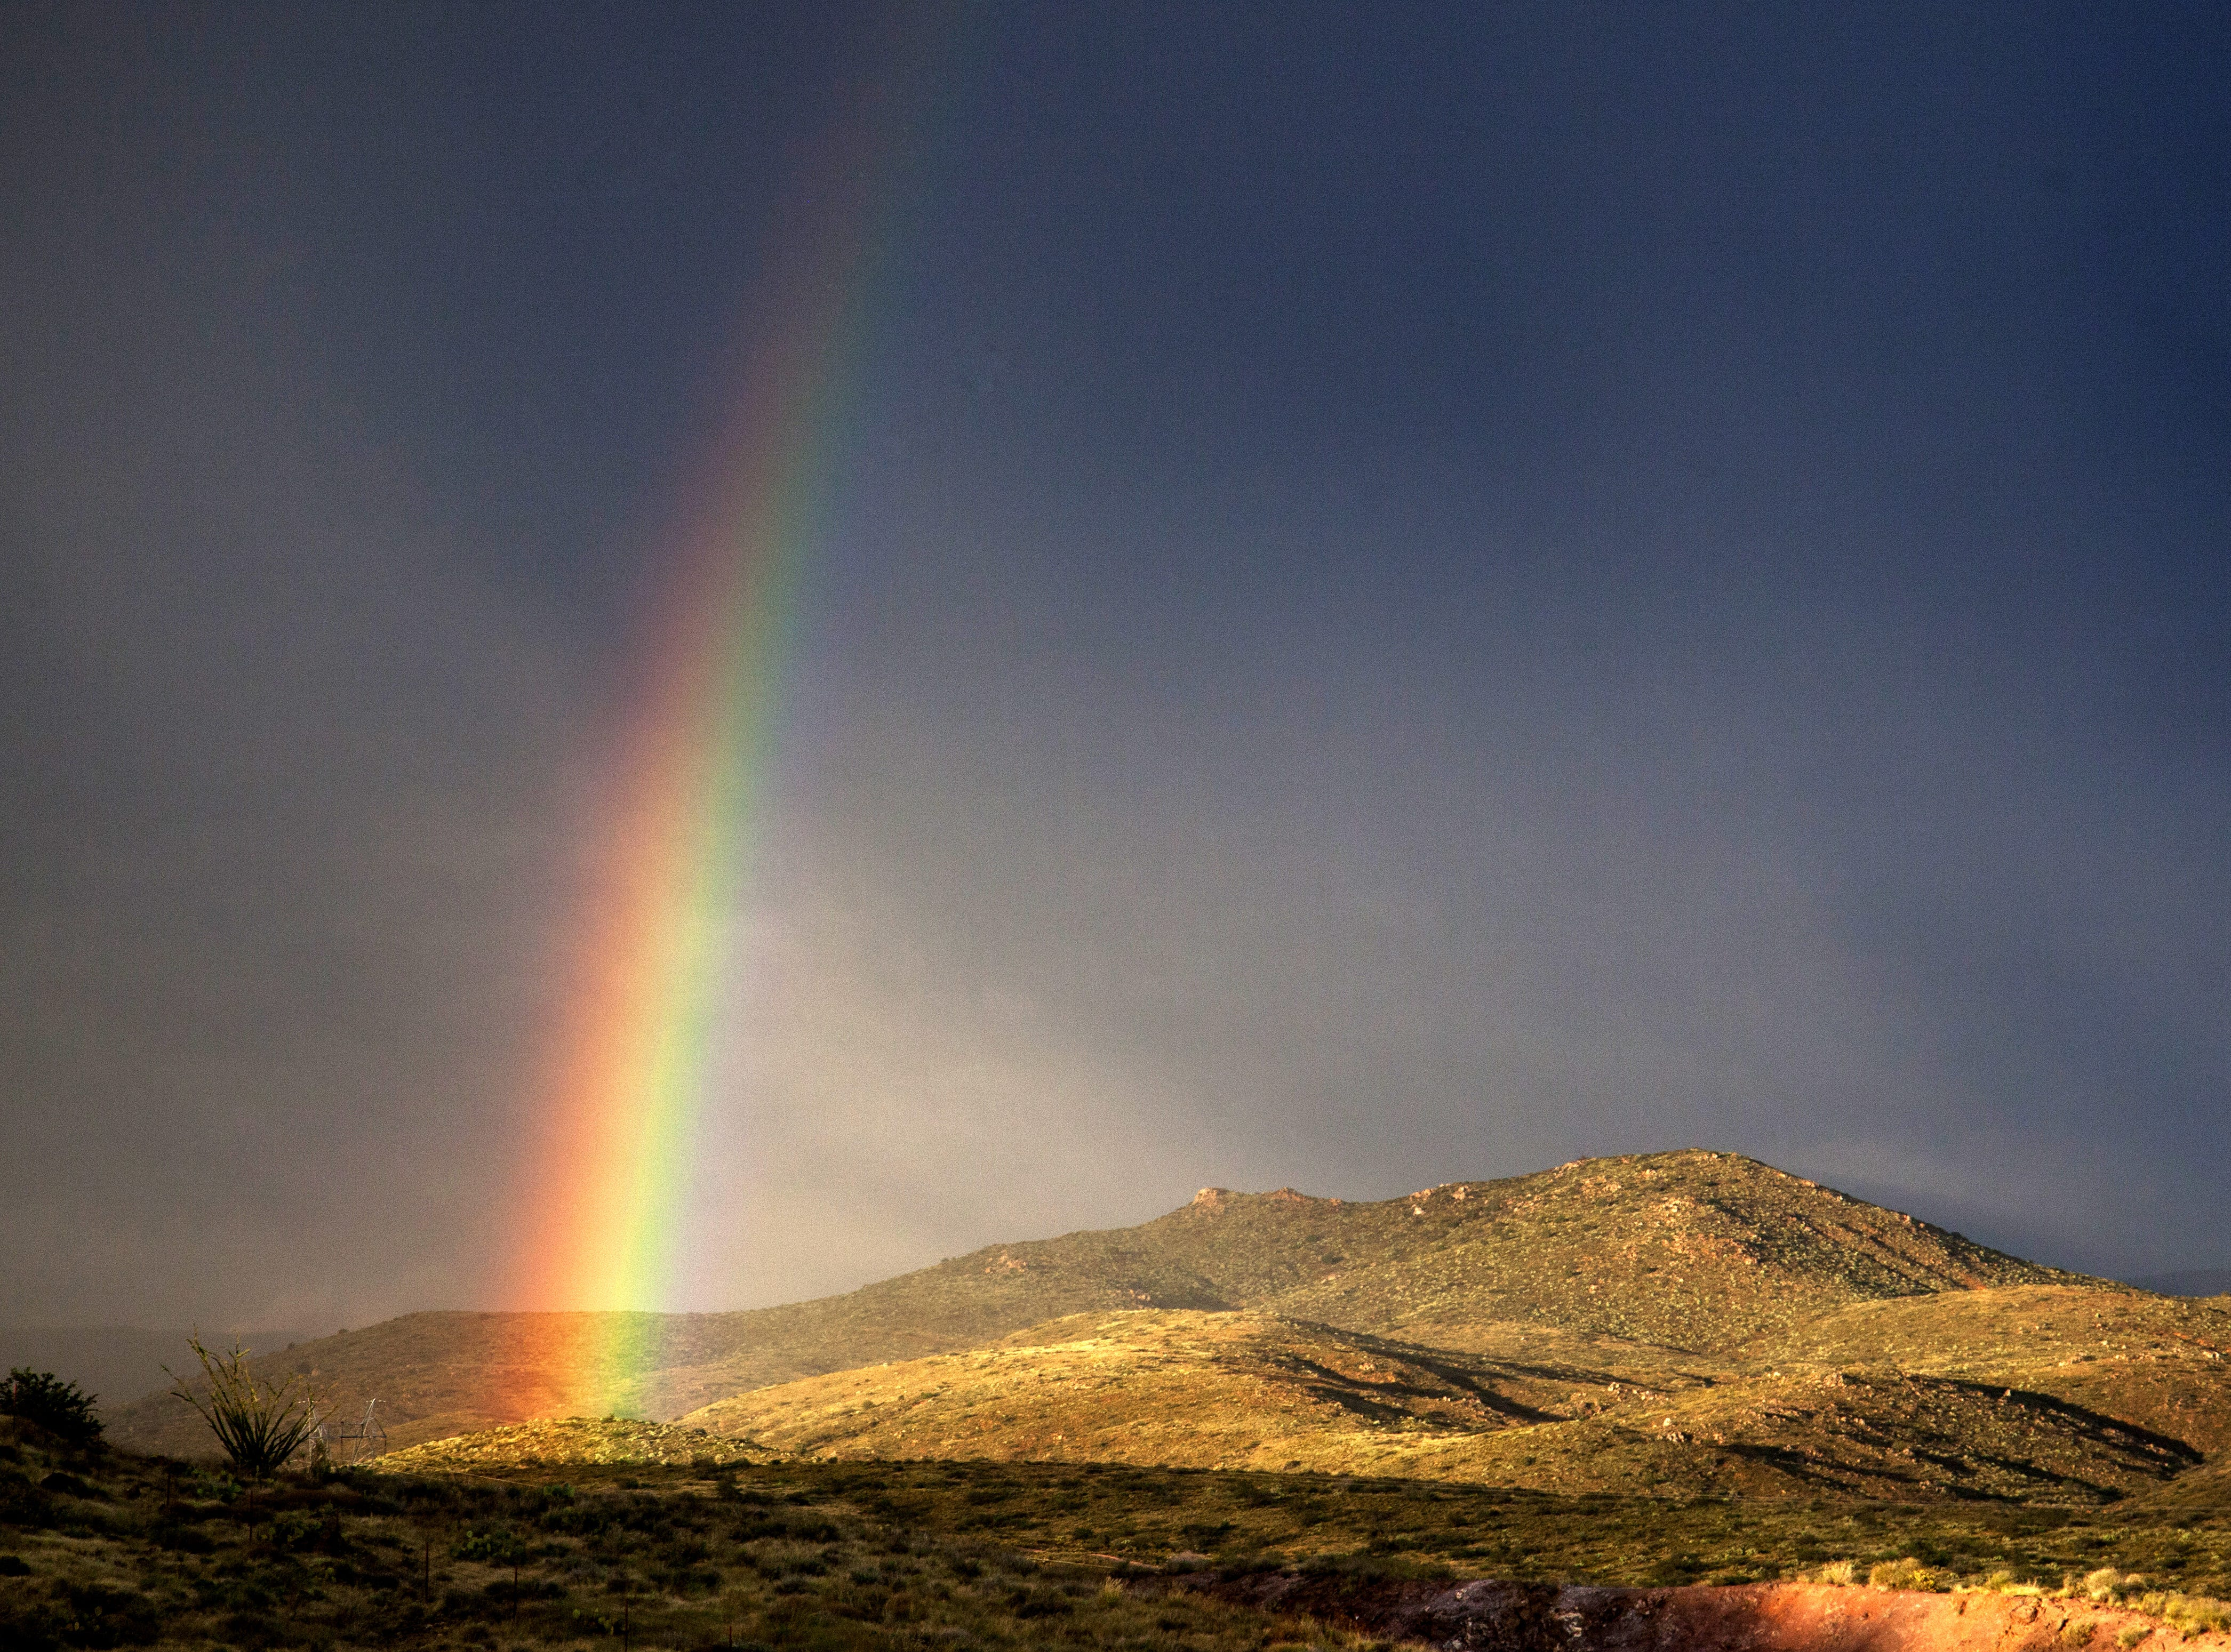 A rainbow shines over I-17 after an afternoon rainstorm near Sunset Point.